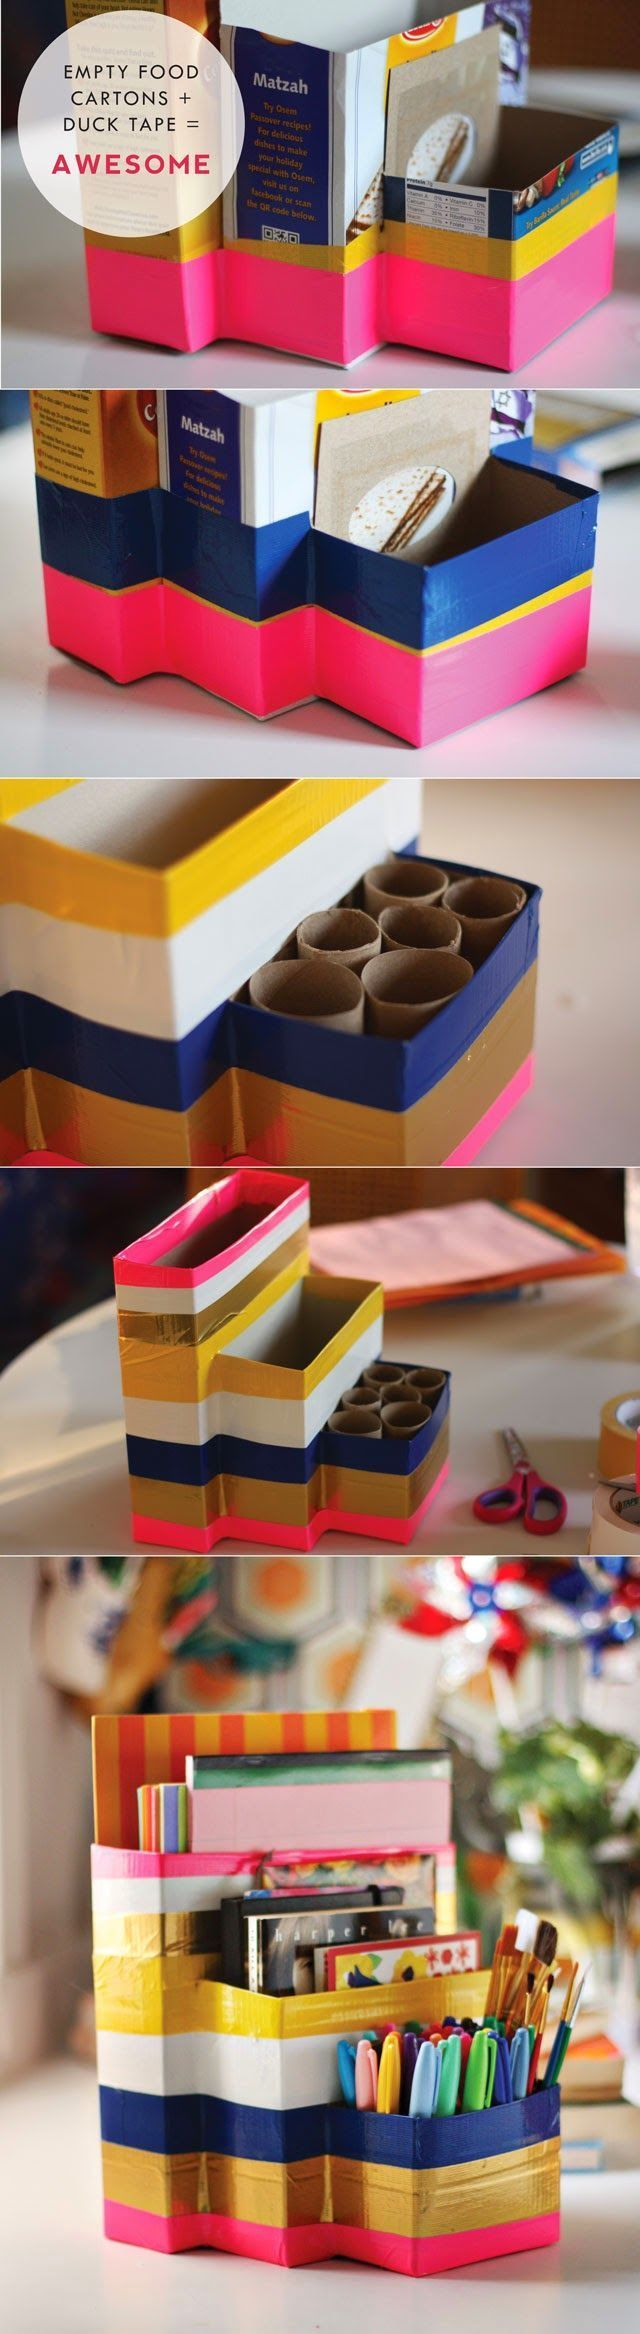 DIY Desk Organizer Pictures, Photos, and Images for Facebook, Tumblr, Pinterest, and Twitter